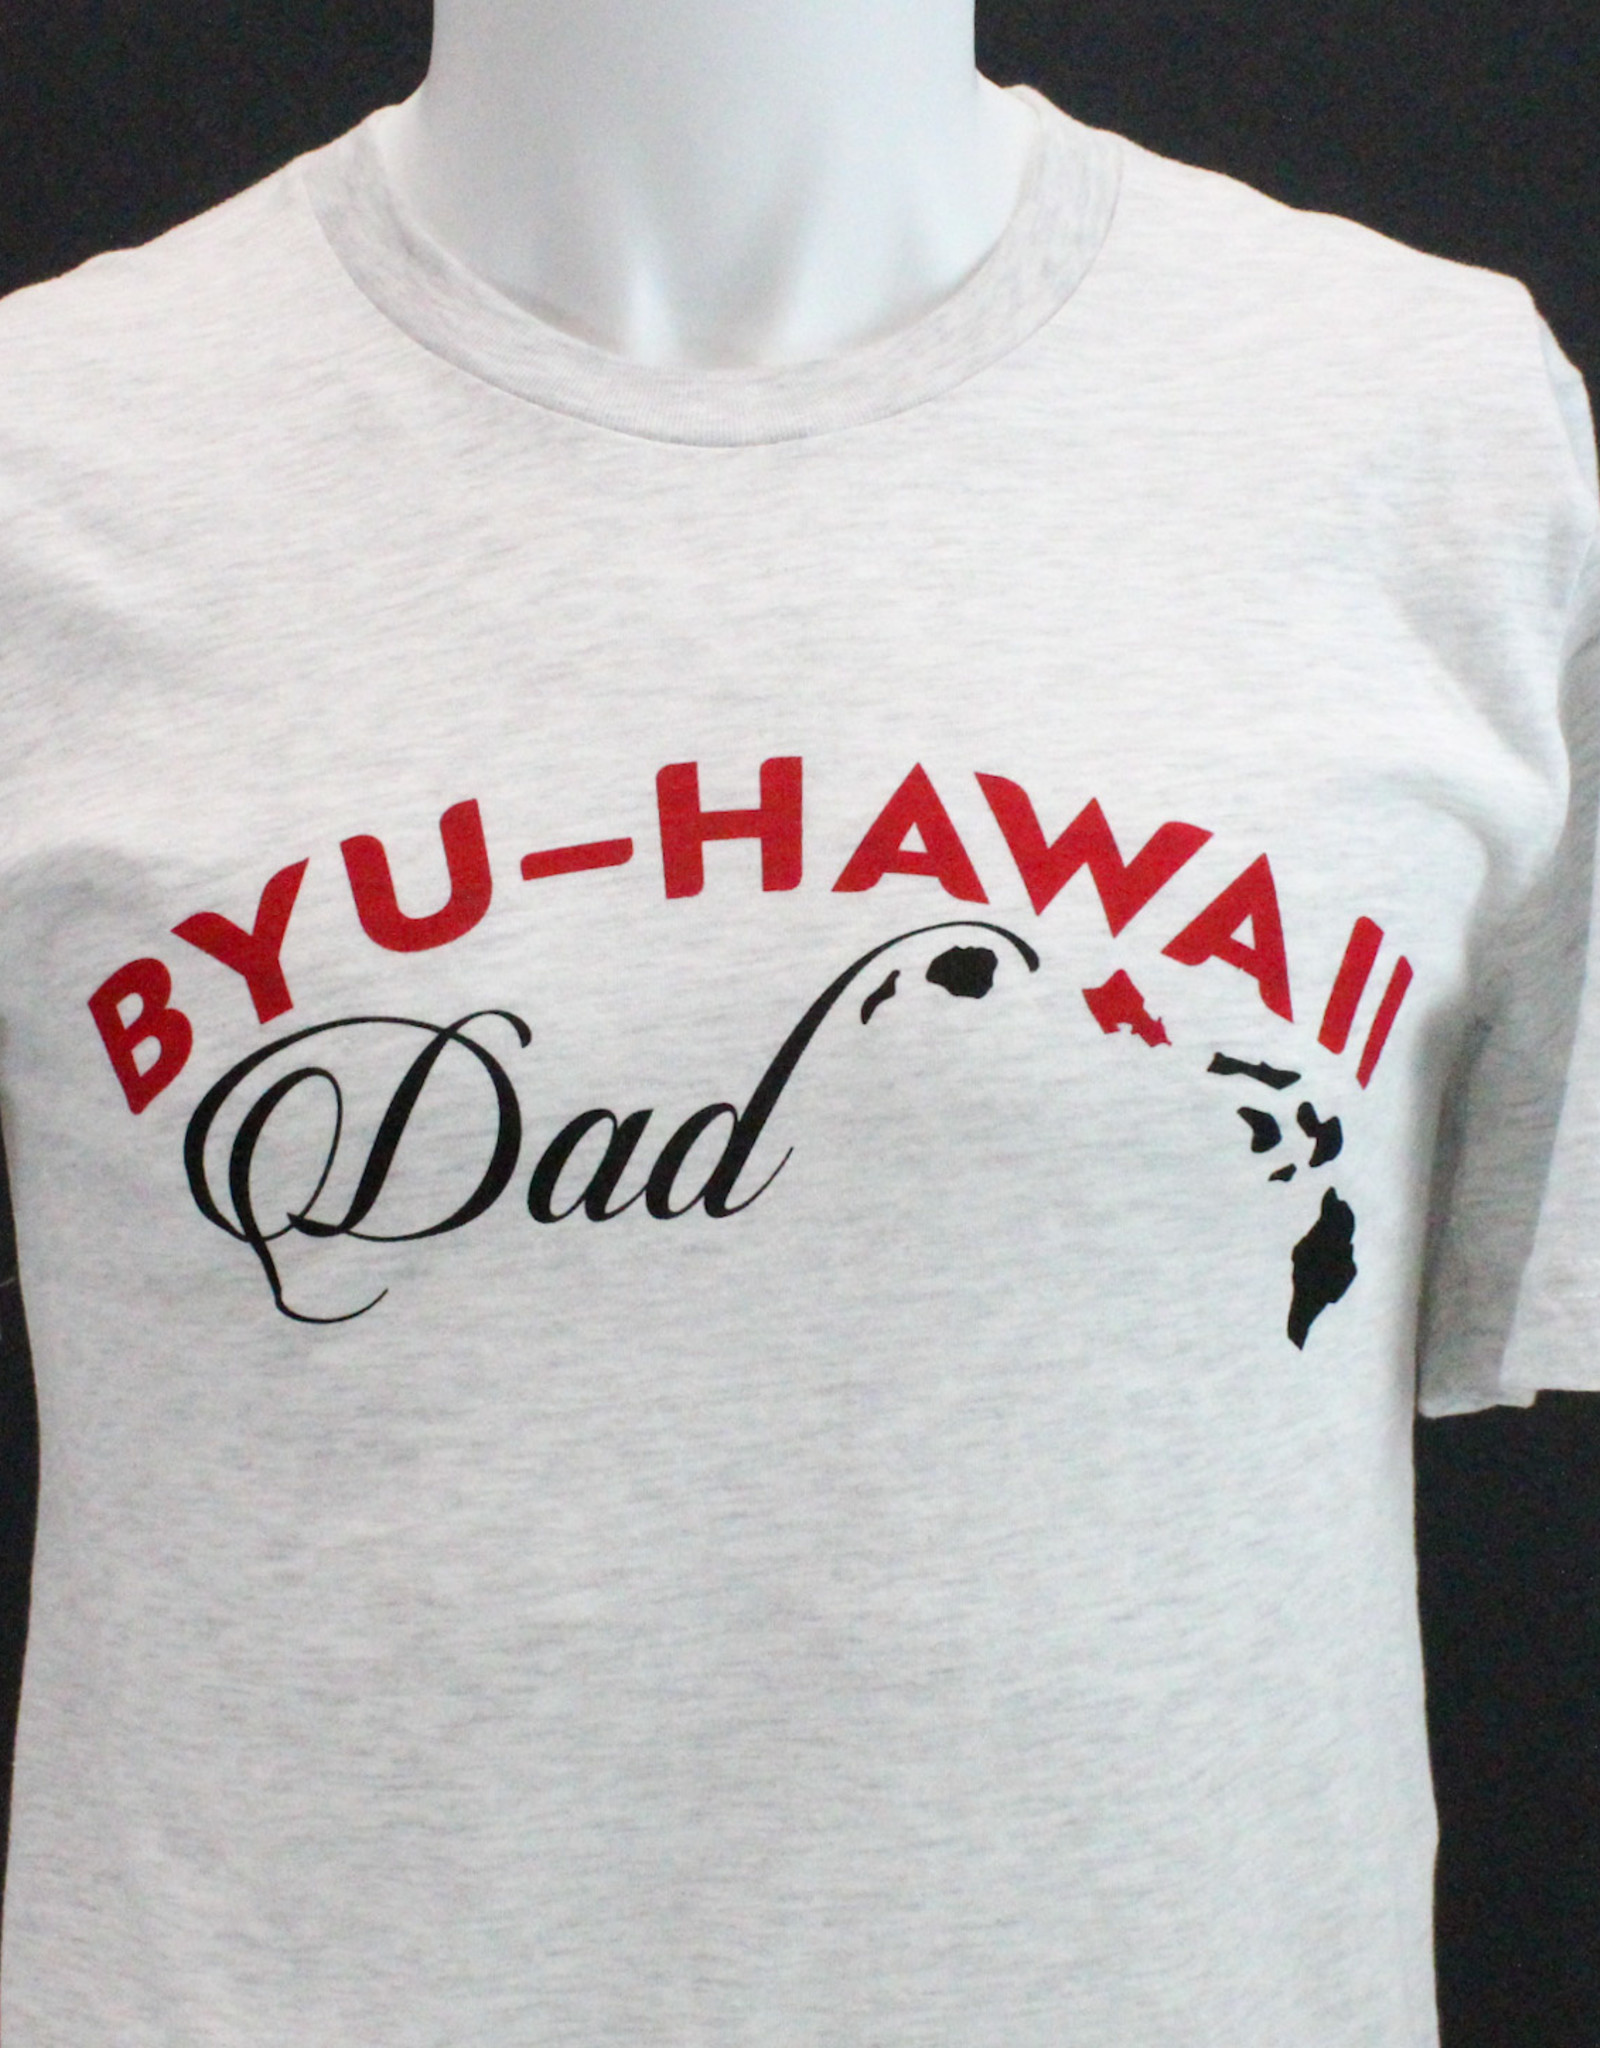 Byu Hawaii Dad T-shirt